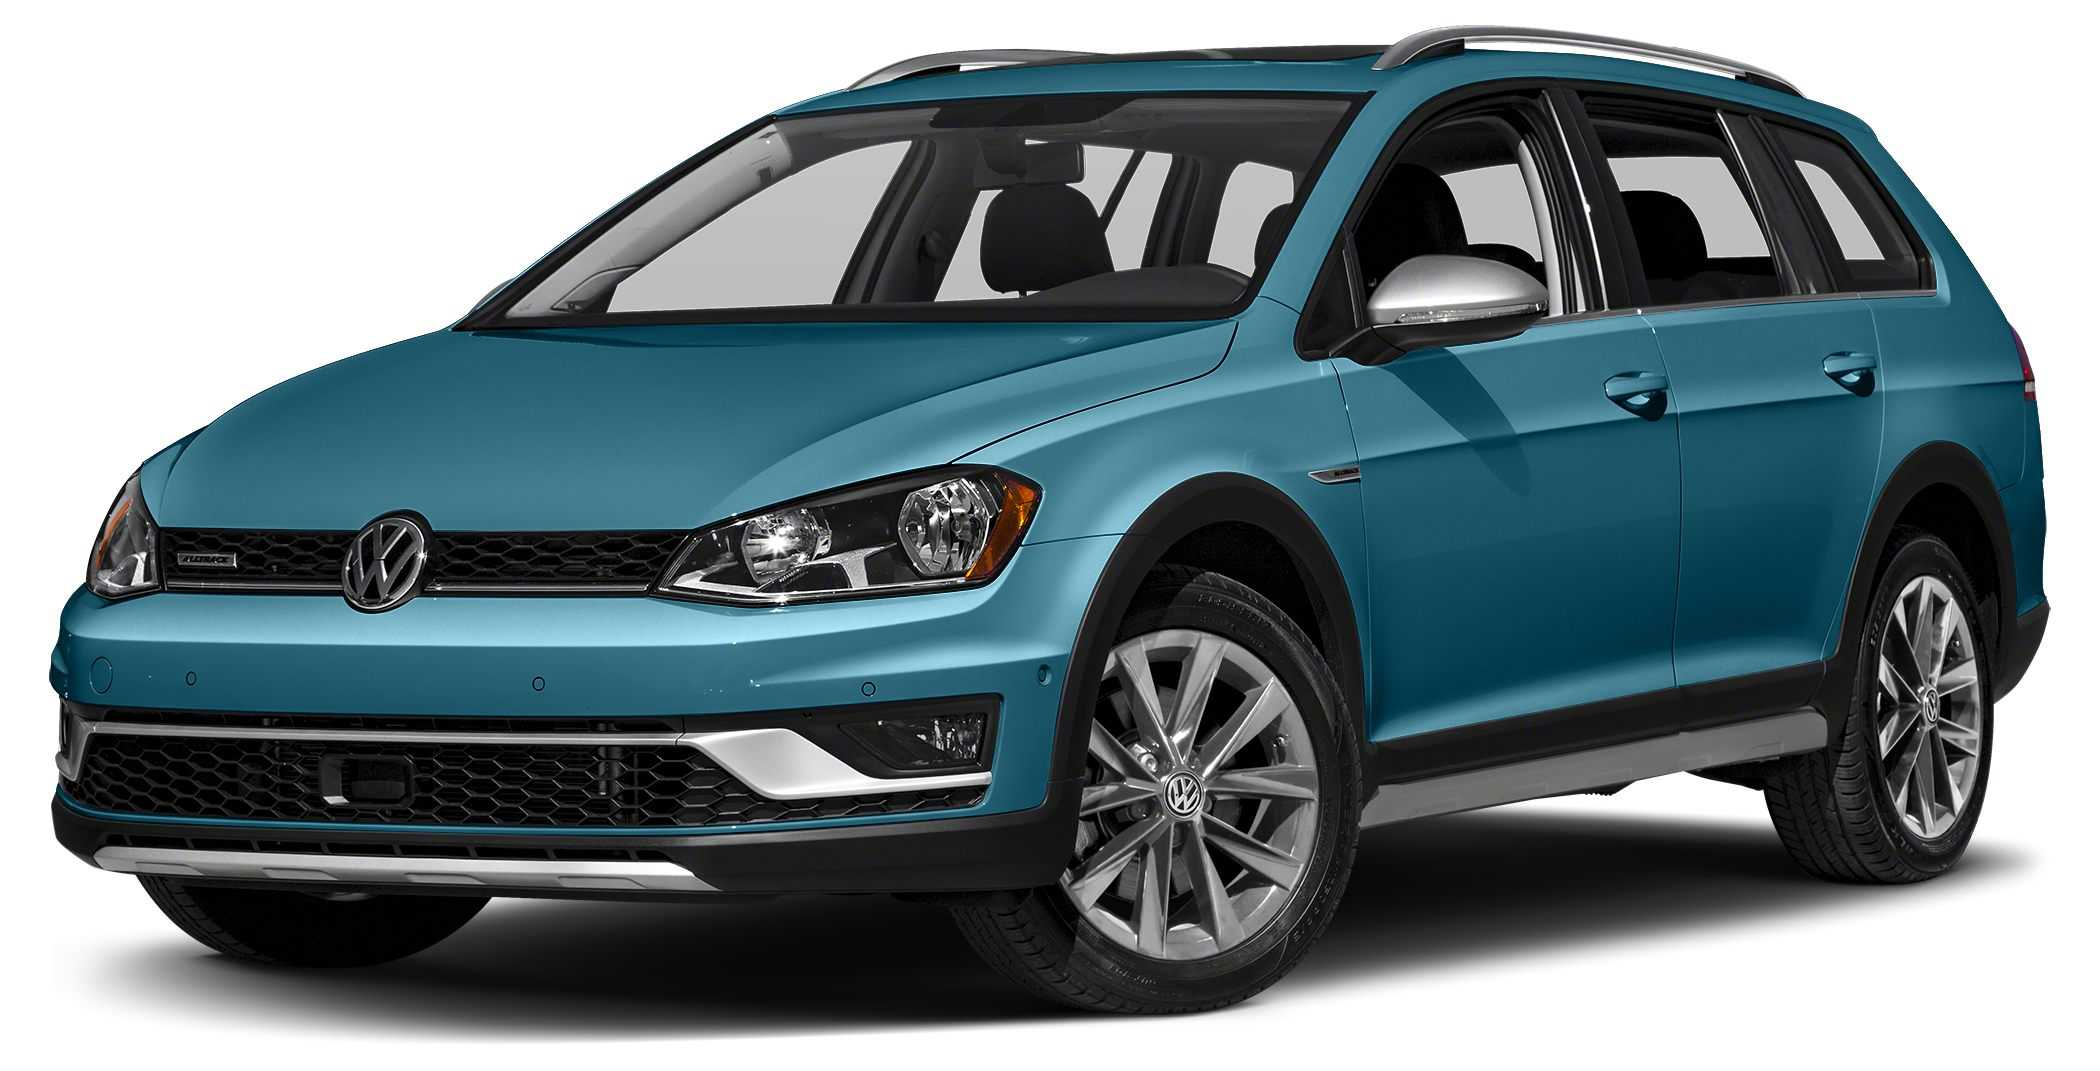 2016 Volkswagen Golf Fort Collins >> 2017 VOLKSWAGEN GOLF ALLTRACK for sale in Fort Collins, CO | 3VWM17AU9HM537805